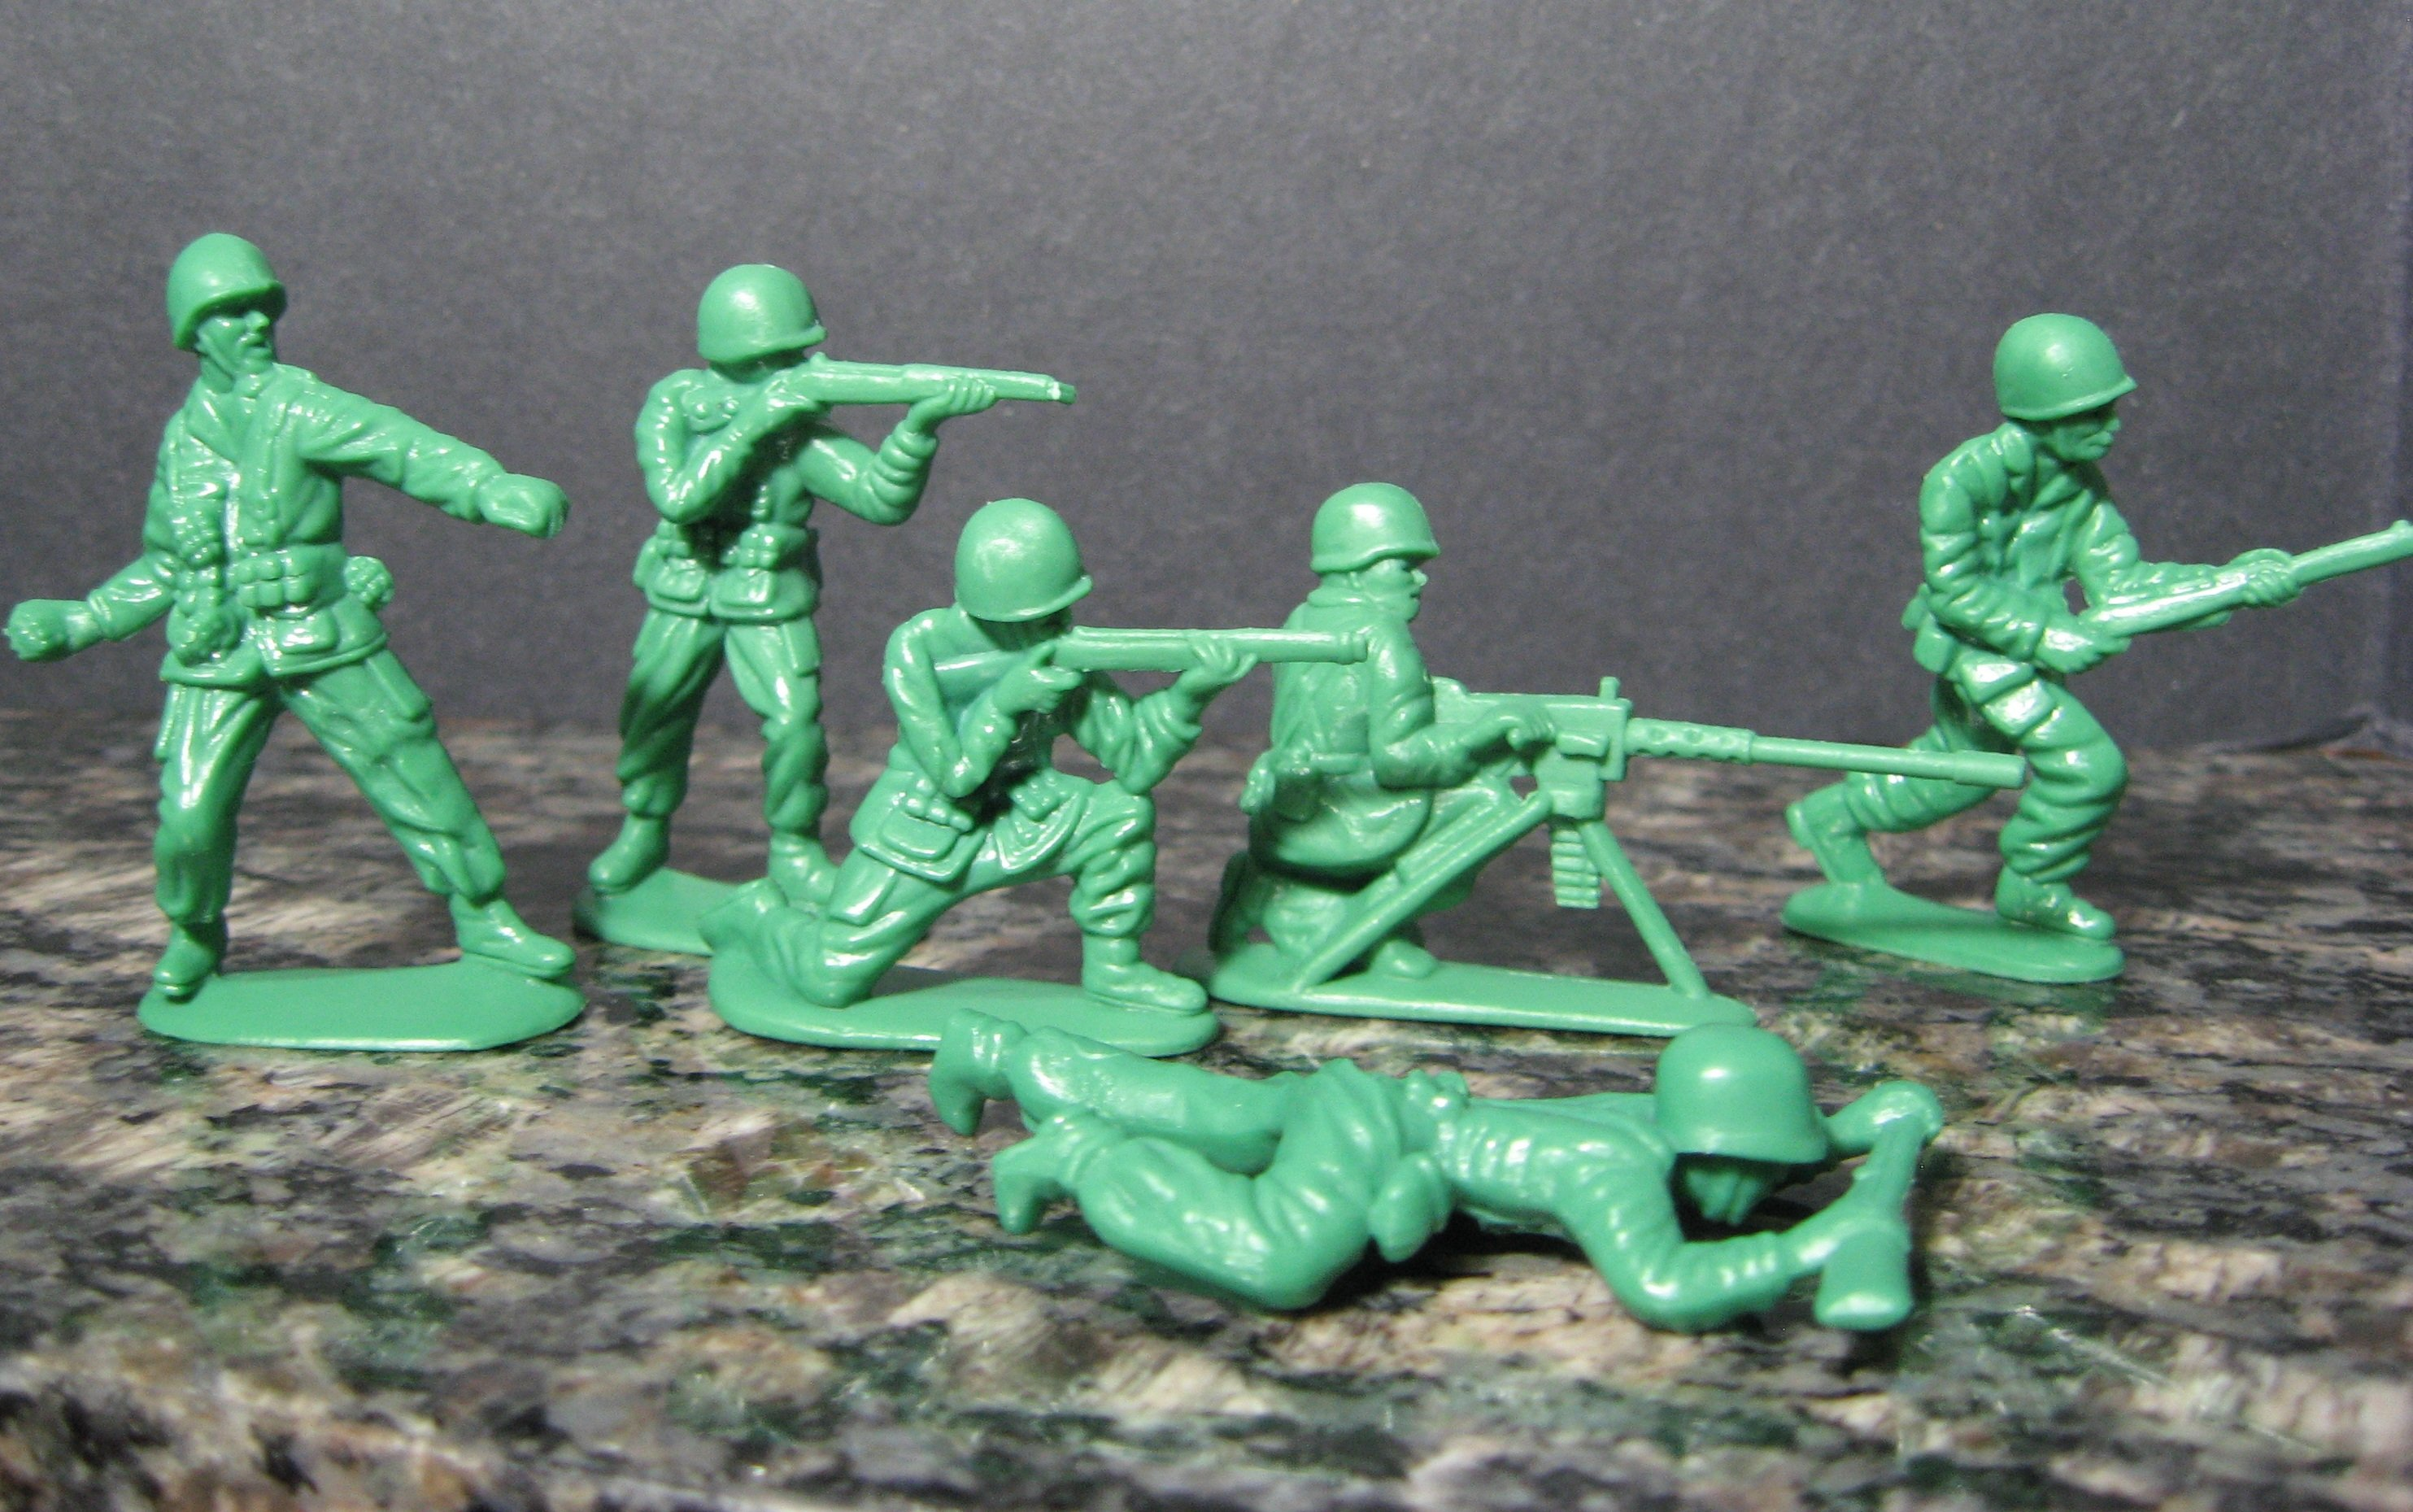 GREEN ARMY MEN toy military toys soldier war wallpaper 2967x1859 534179 WallpaperUP